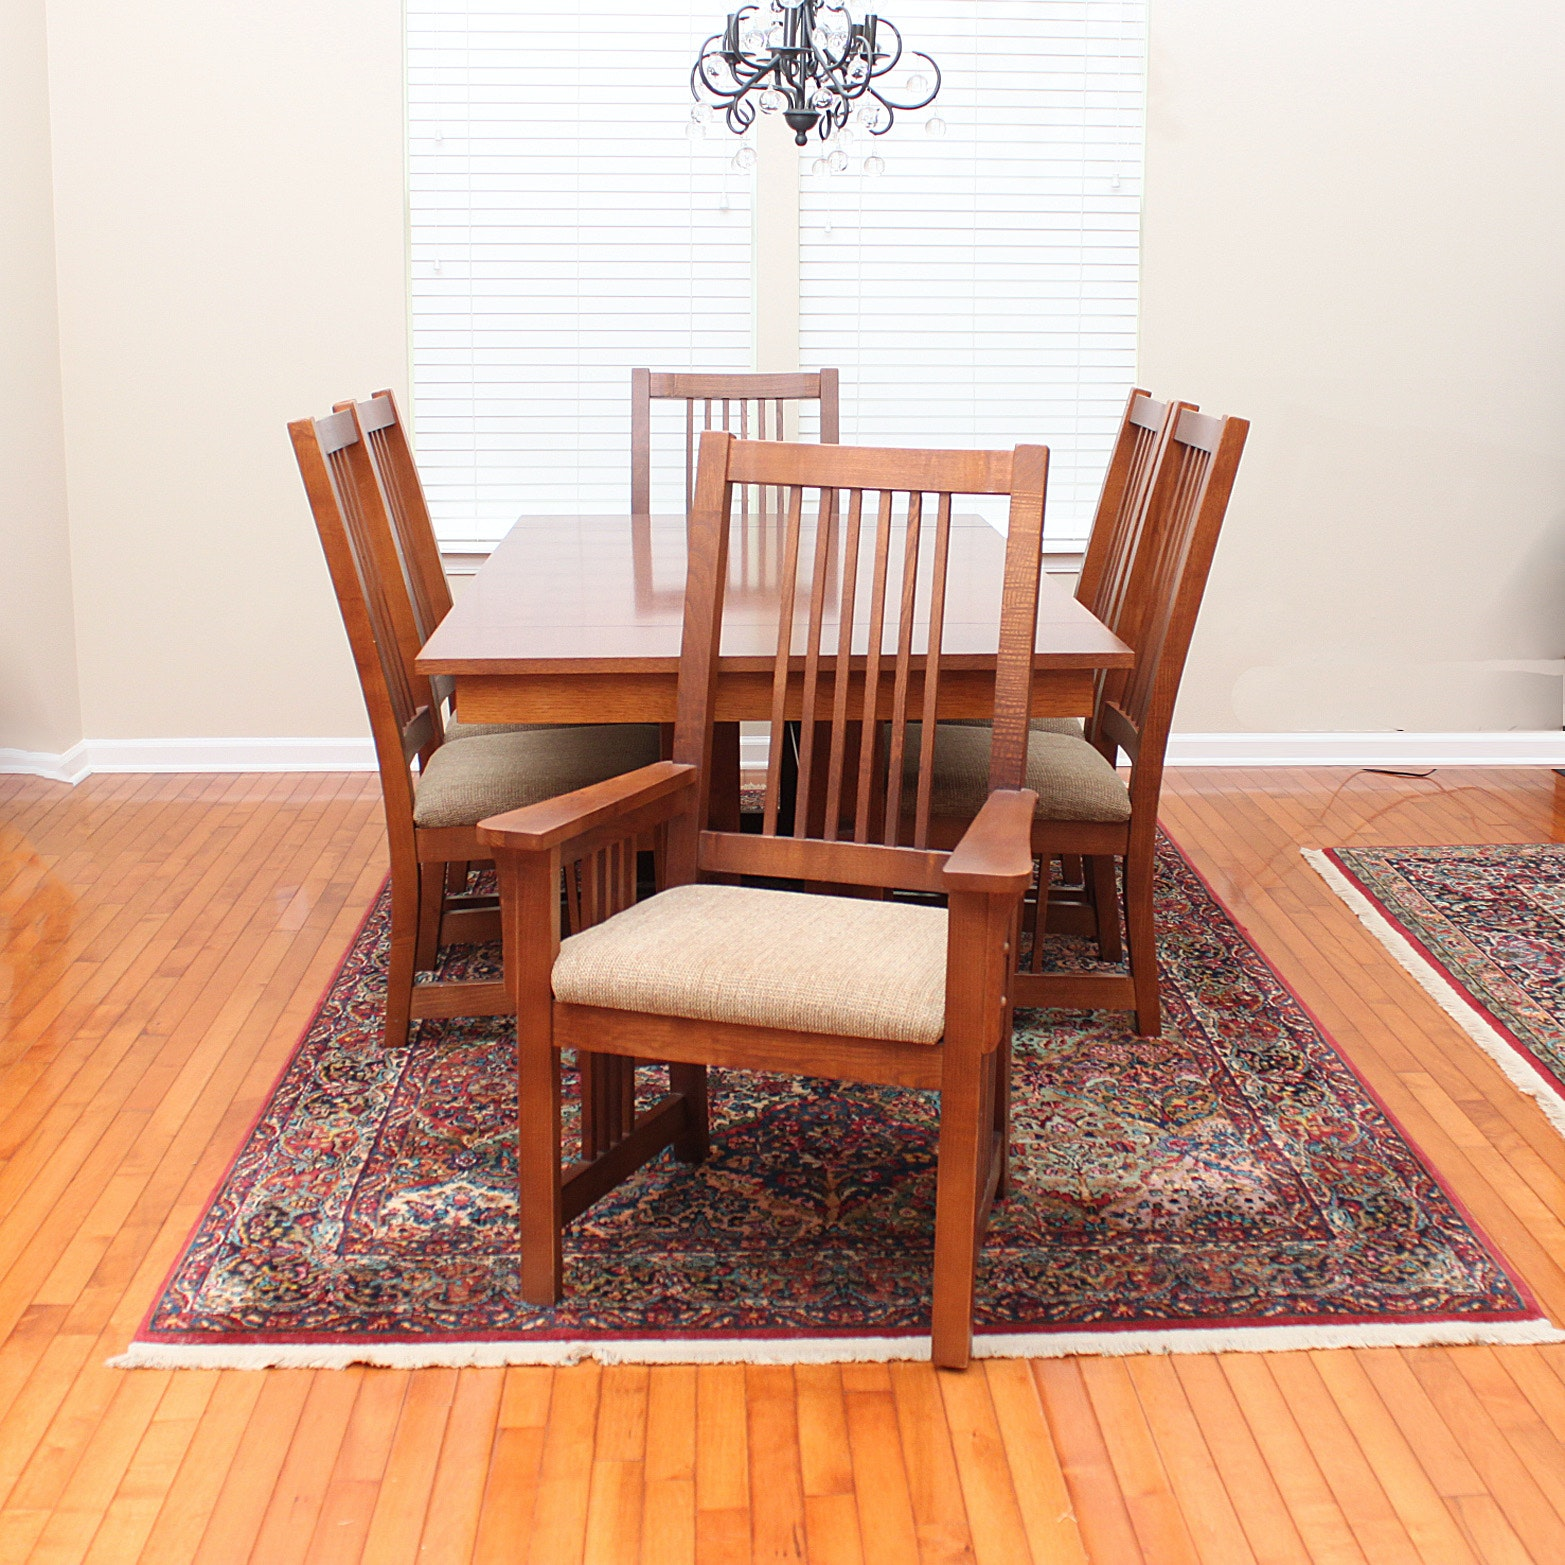 bassett furniture mission style oak dining table and chairs